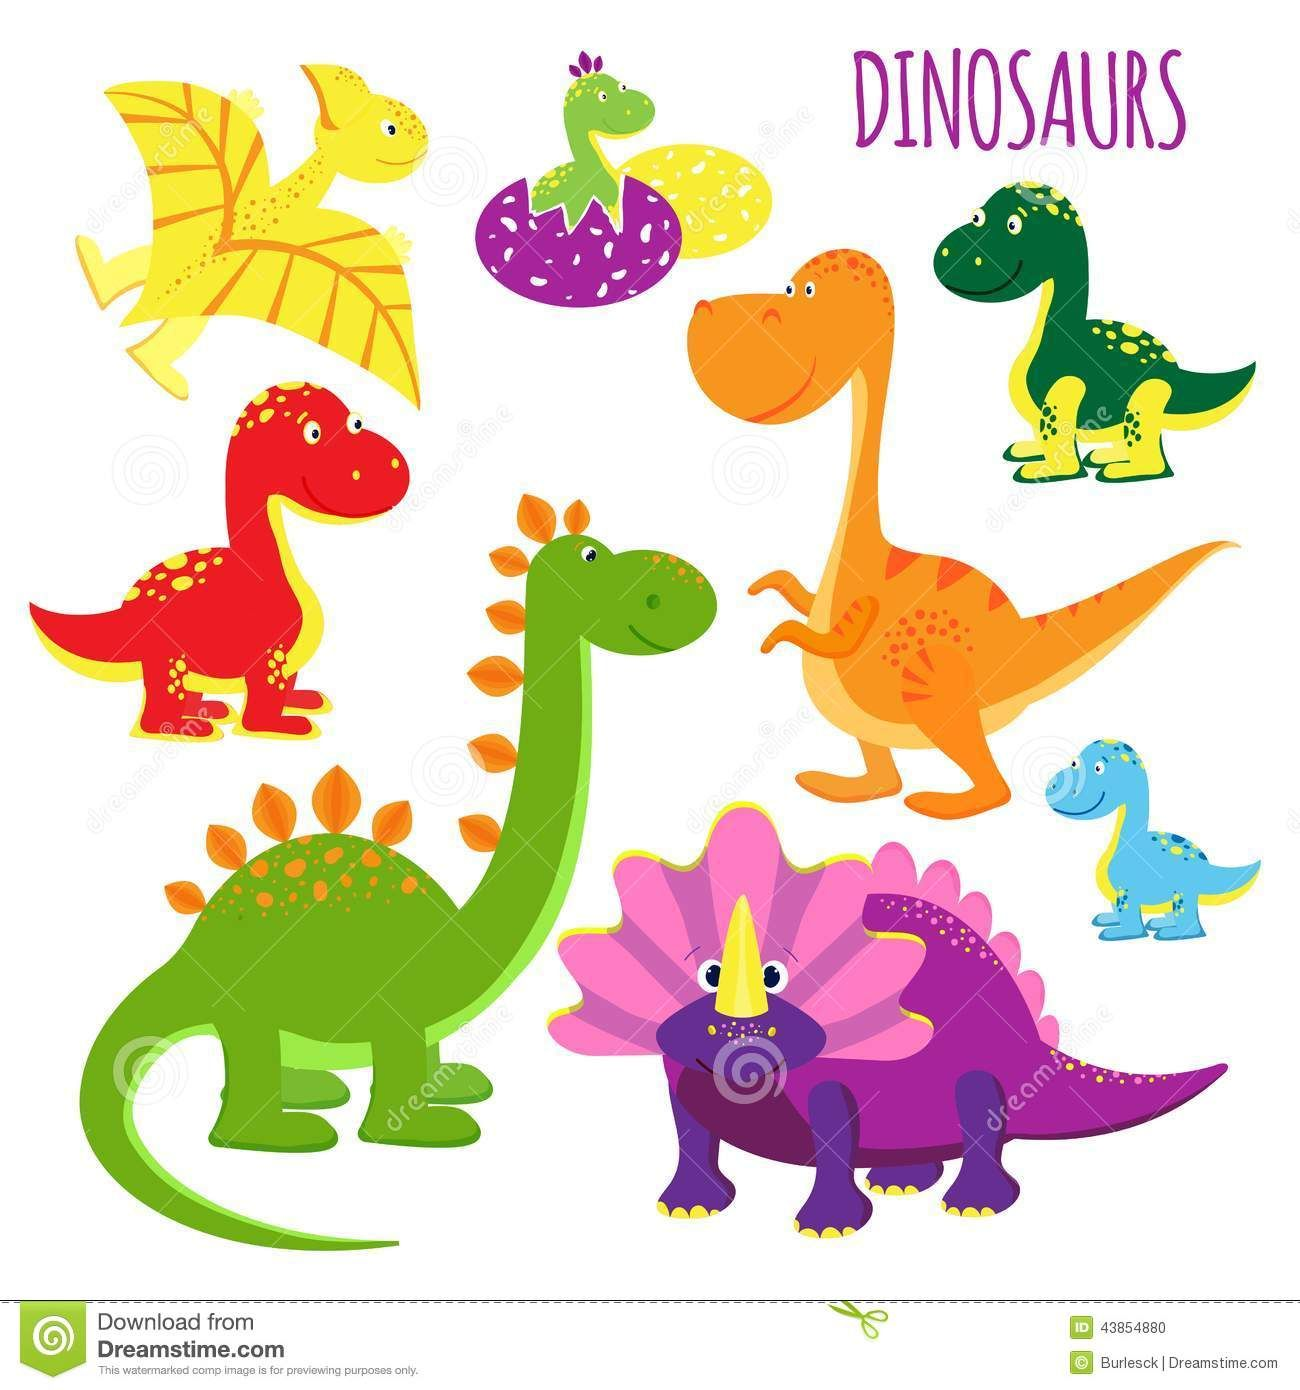 Uncategorized Dinosaur Pictures For Kids vector icons baby dinosaurs cute set brightly colored vivid of cartoon for kids showing a variety species clipart on white